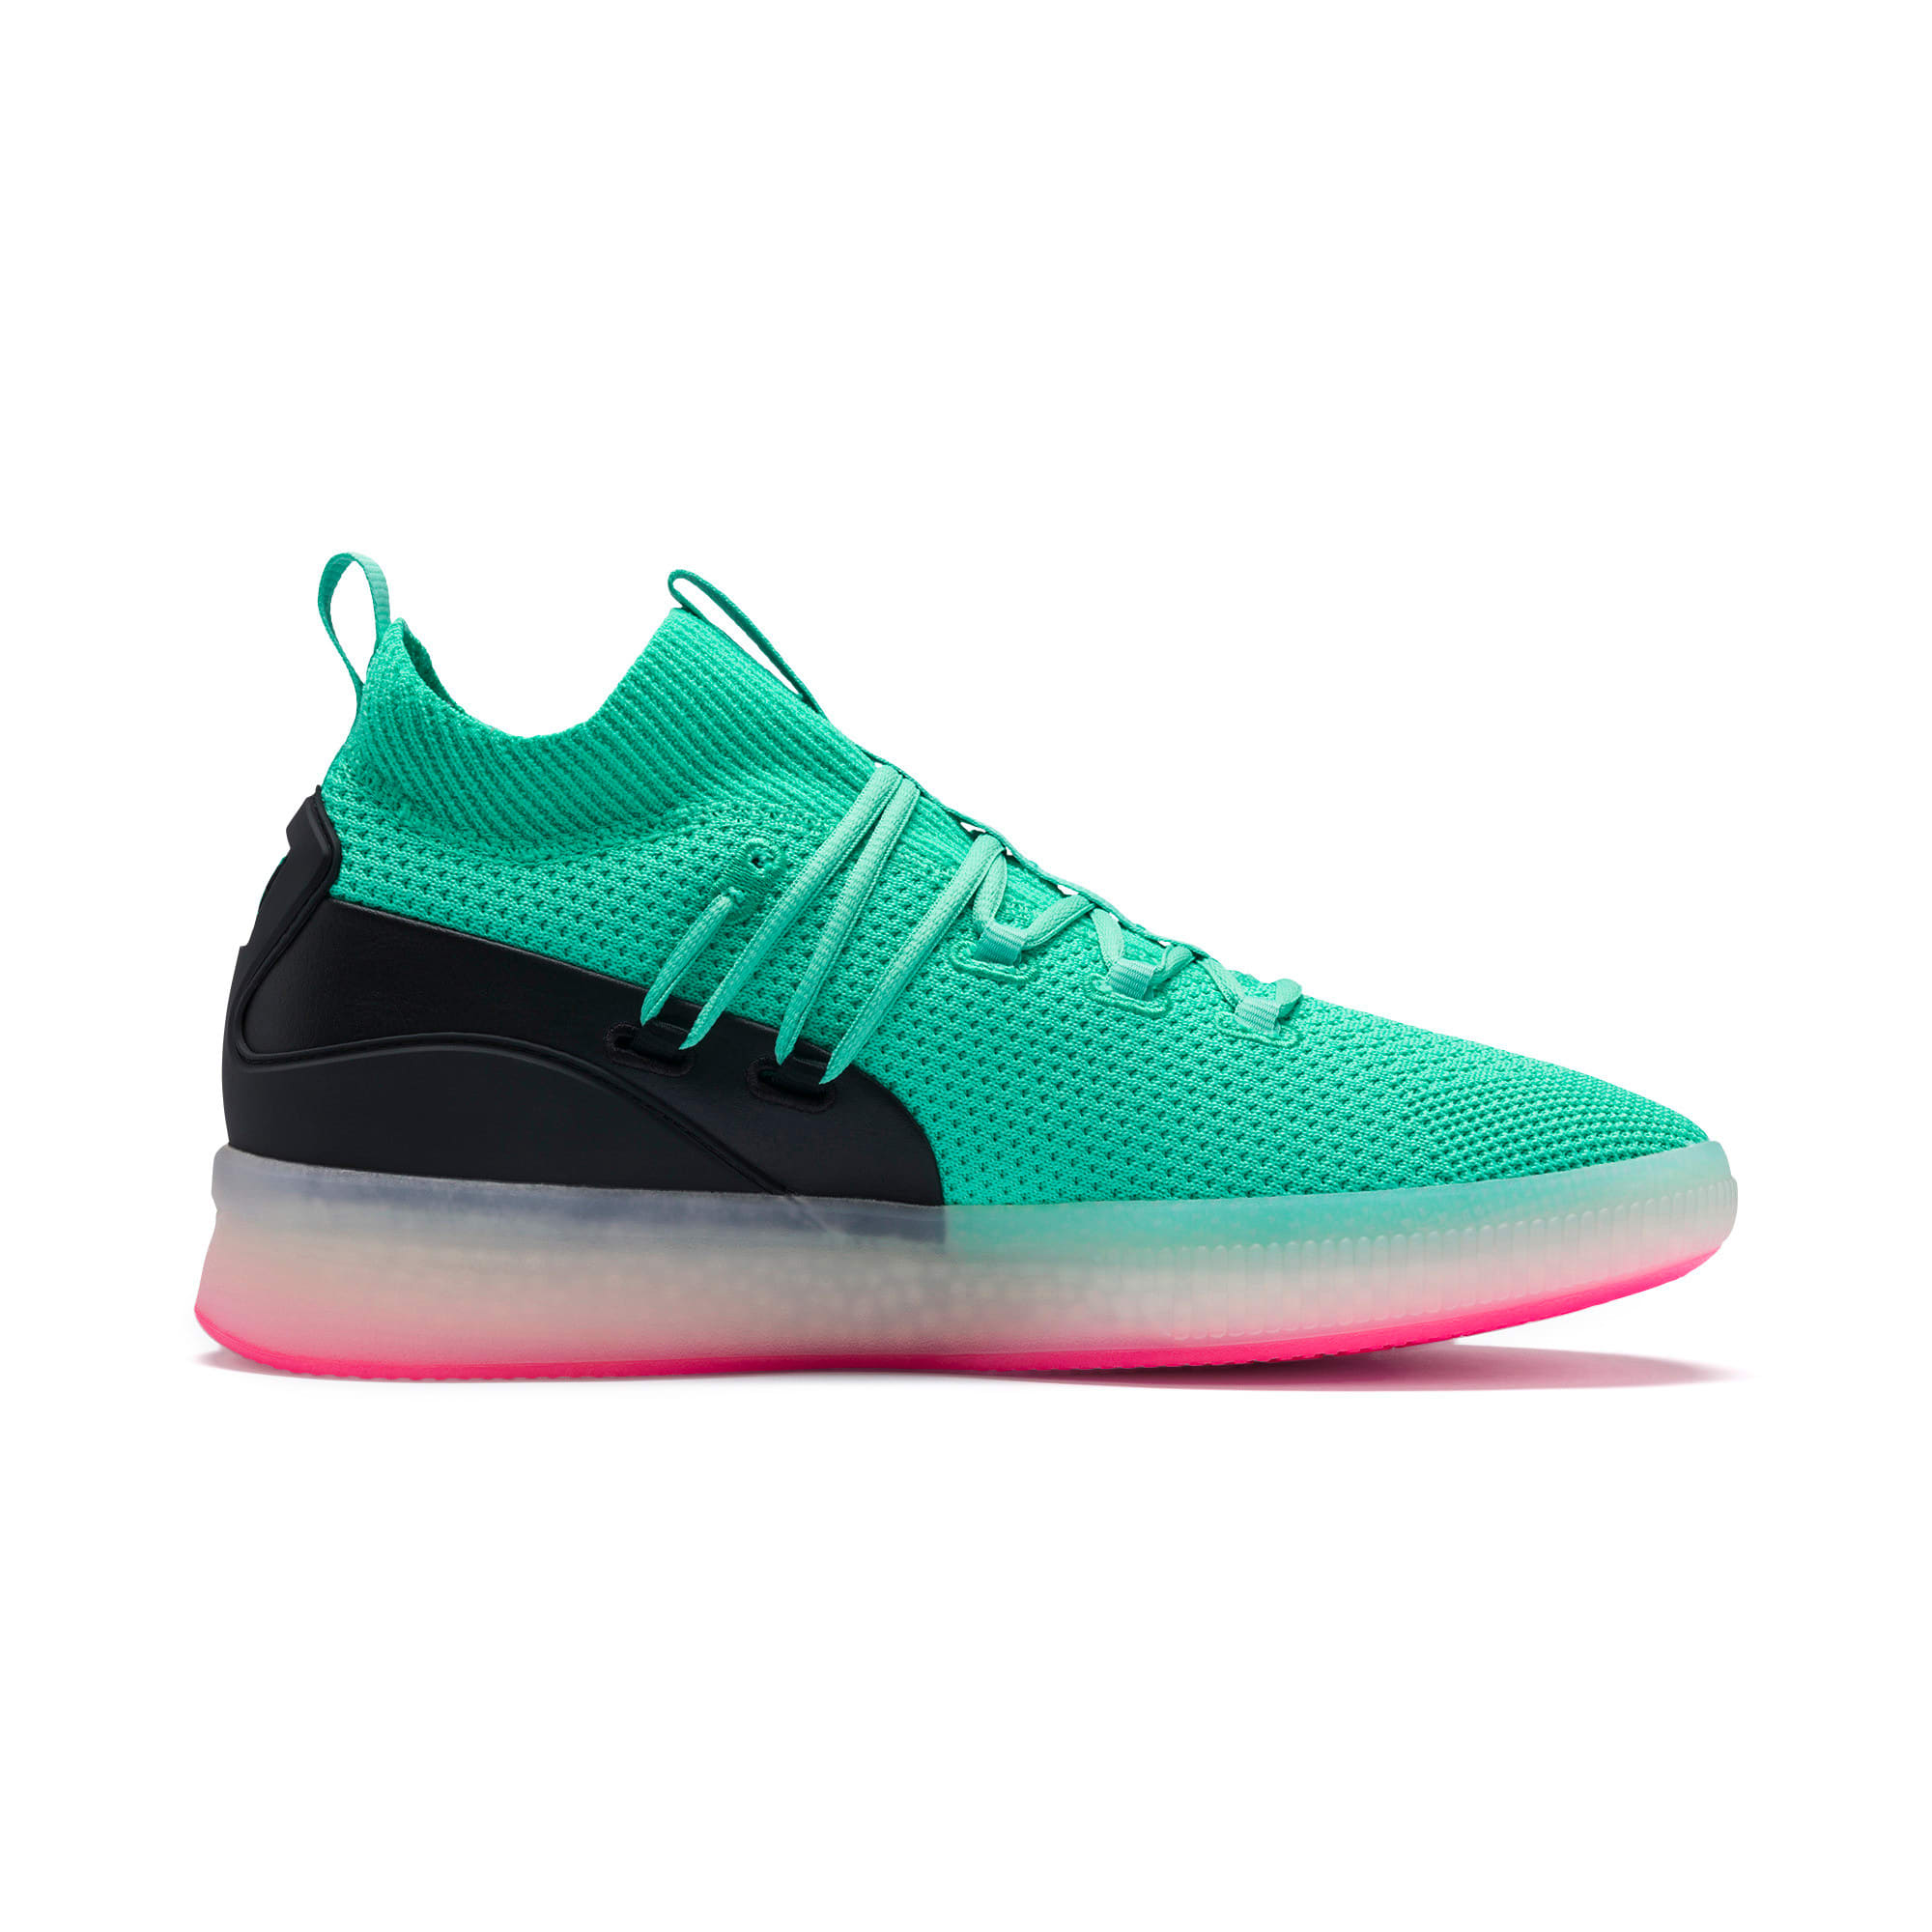 62 Best Green Basketball Shoes (September 2019) | RunRepeat